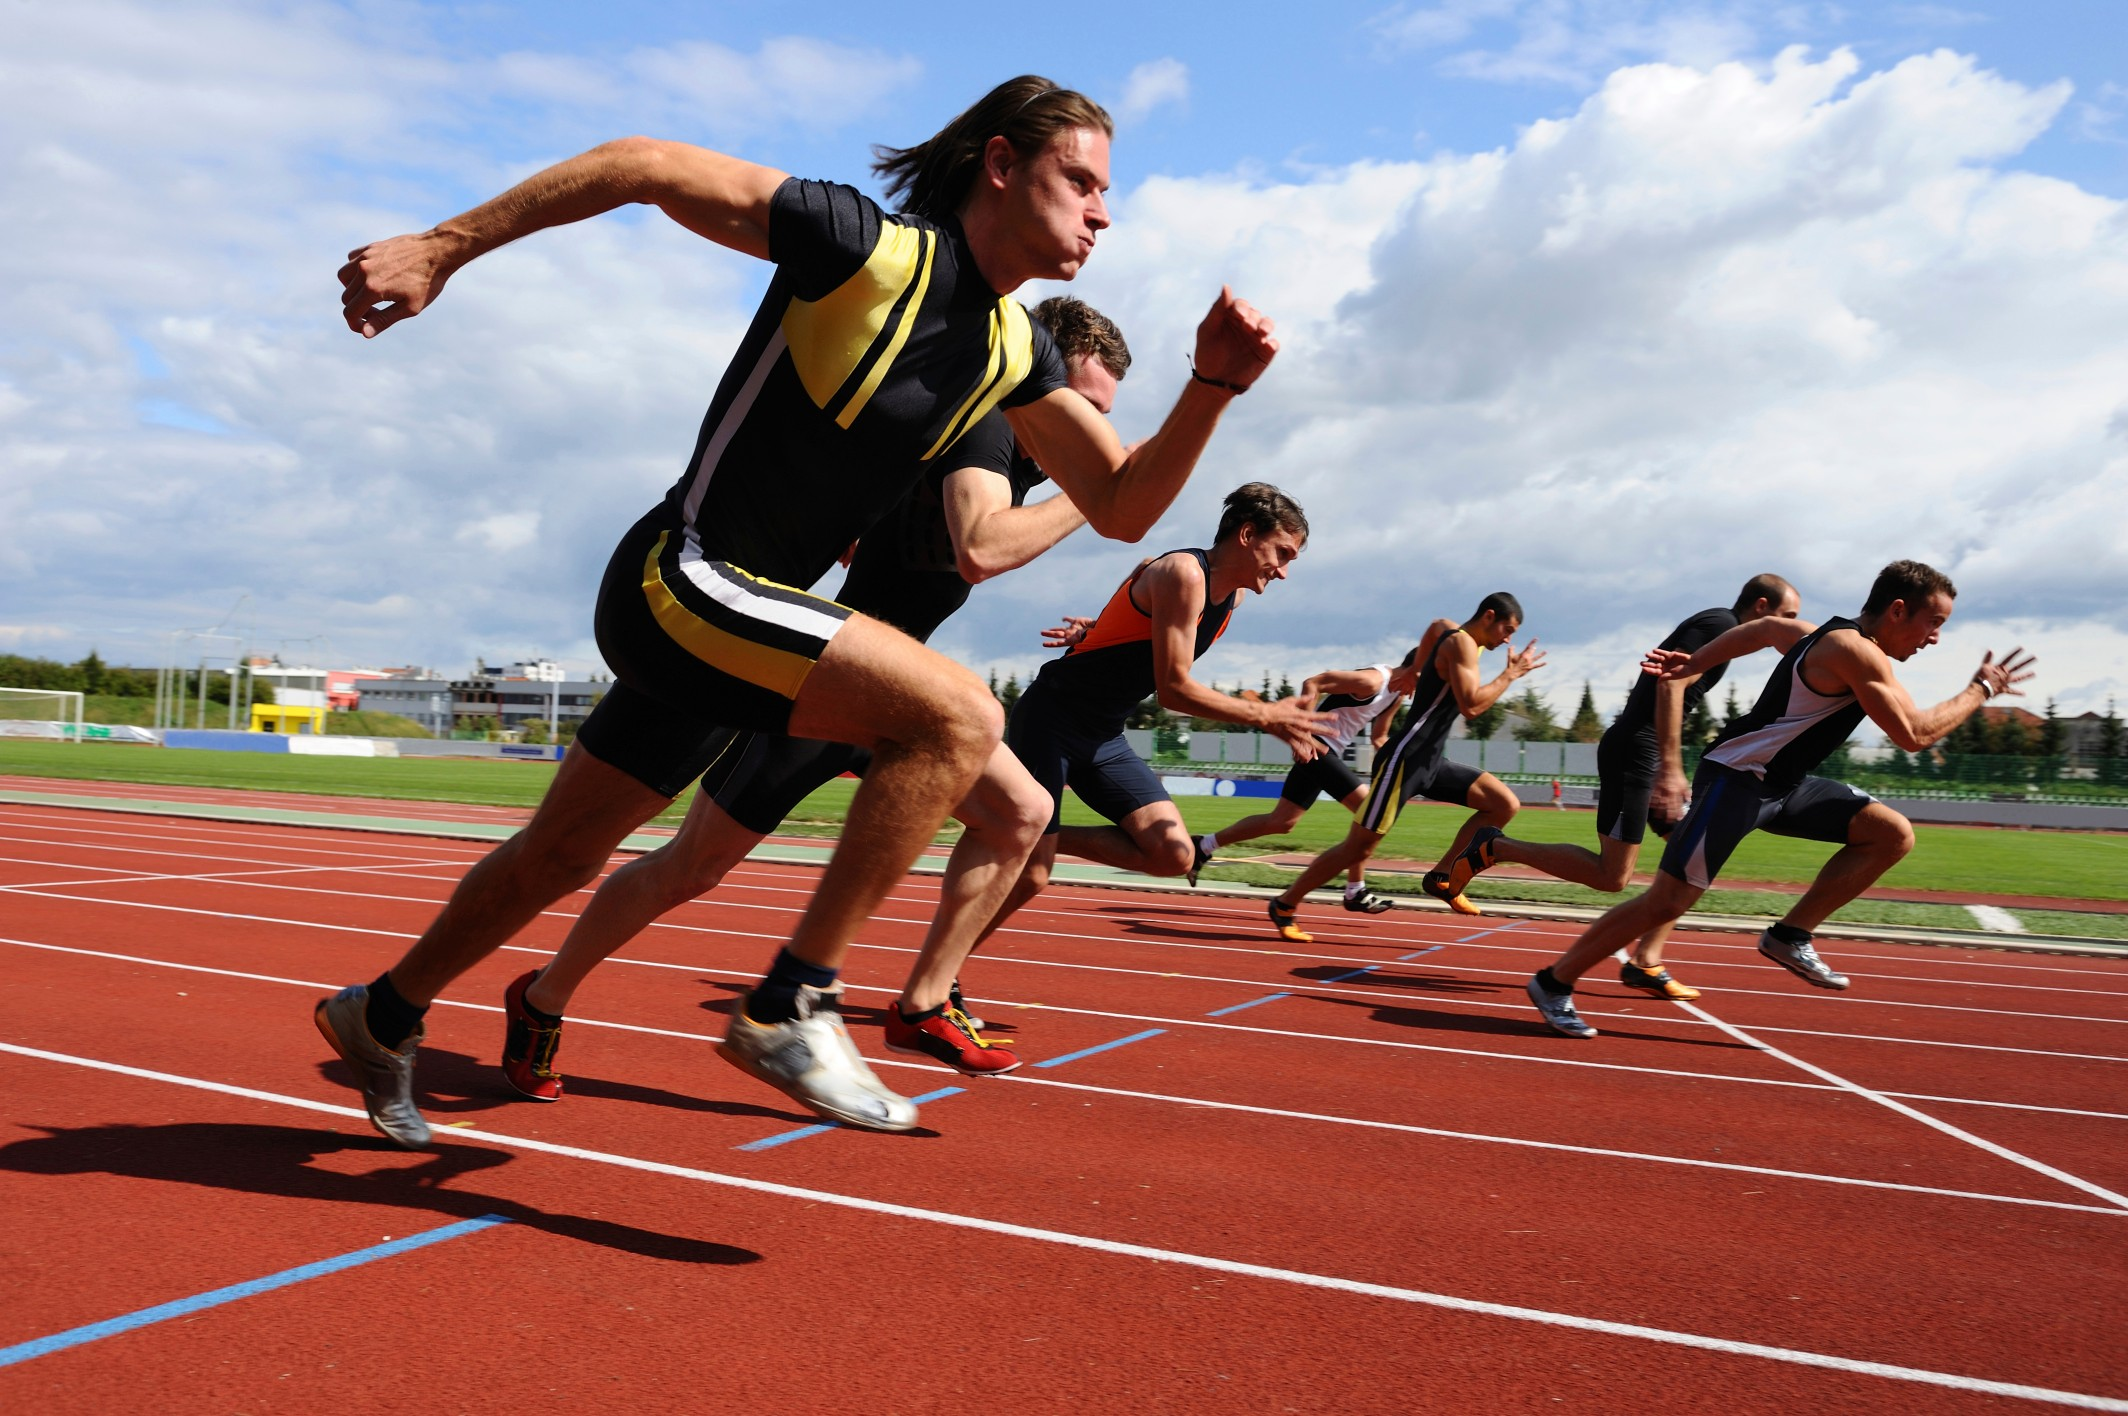 ETC Sports Surfaces are UK experts in high quality polymeric running track surfaces.